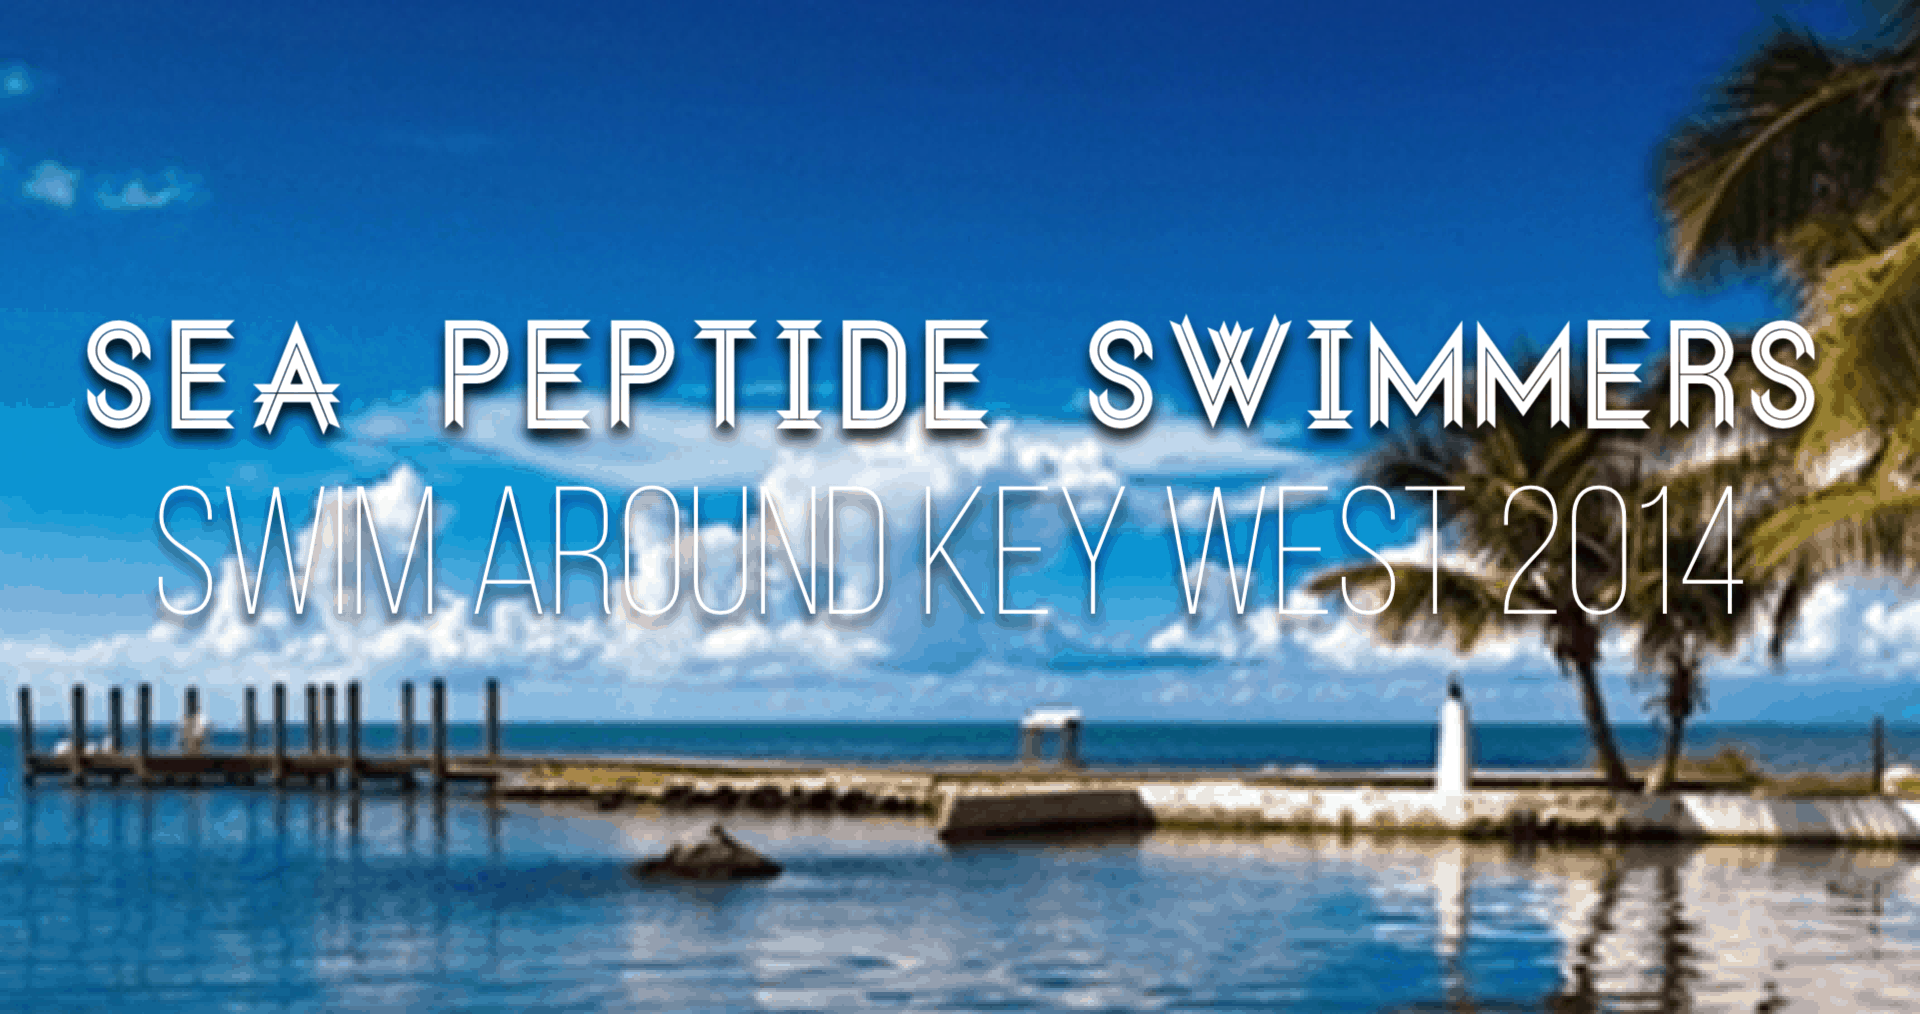 Catching up with Erin Spineto, member of the Sea Peptide Swimmers